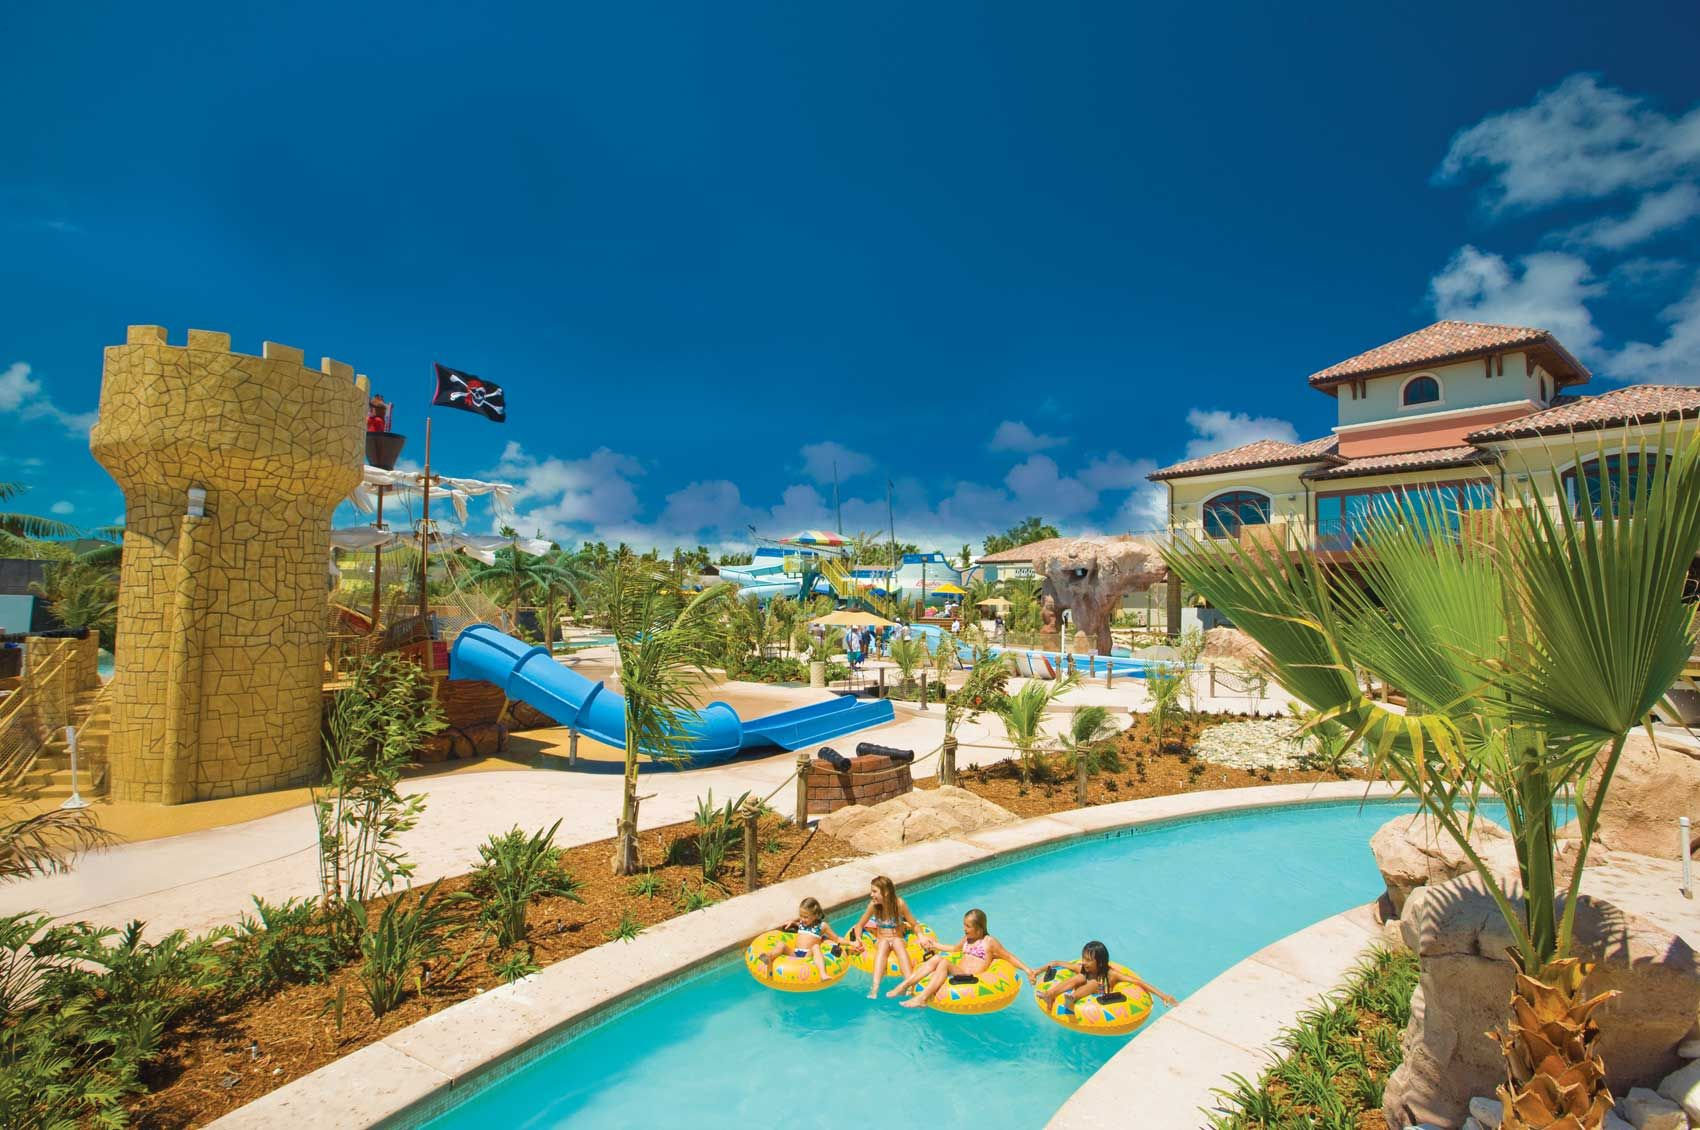 Beaches Turks Caicos Resort Villages Spa Is One Of Fodor S Picks For Fun